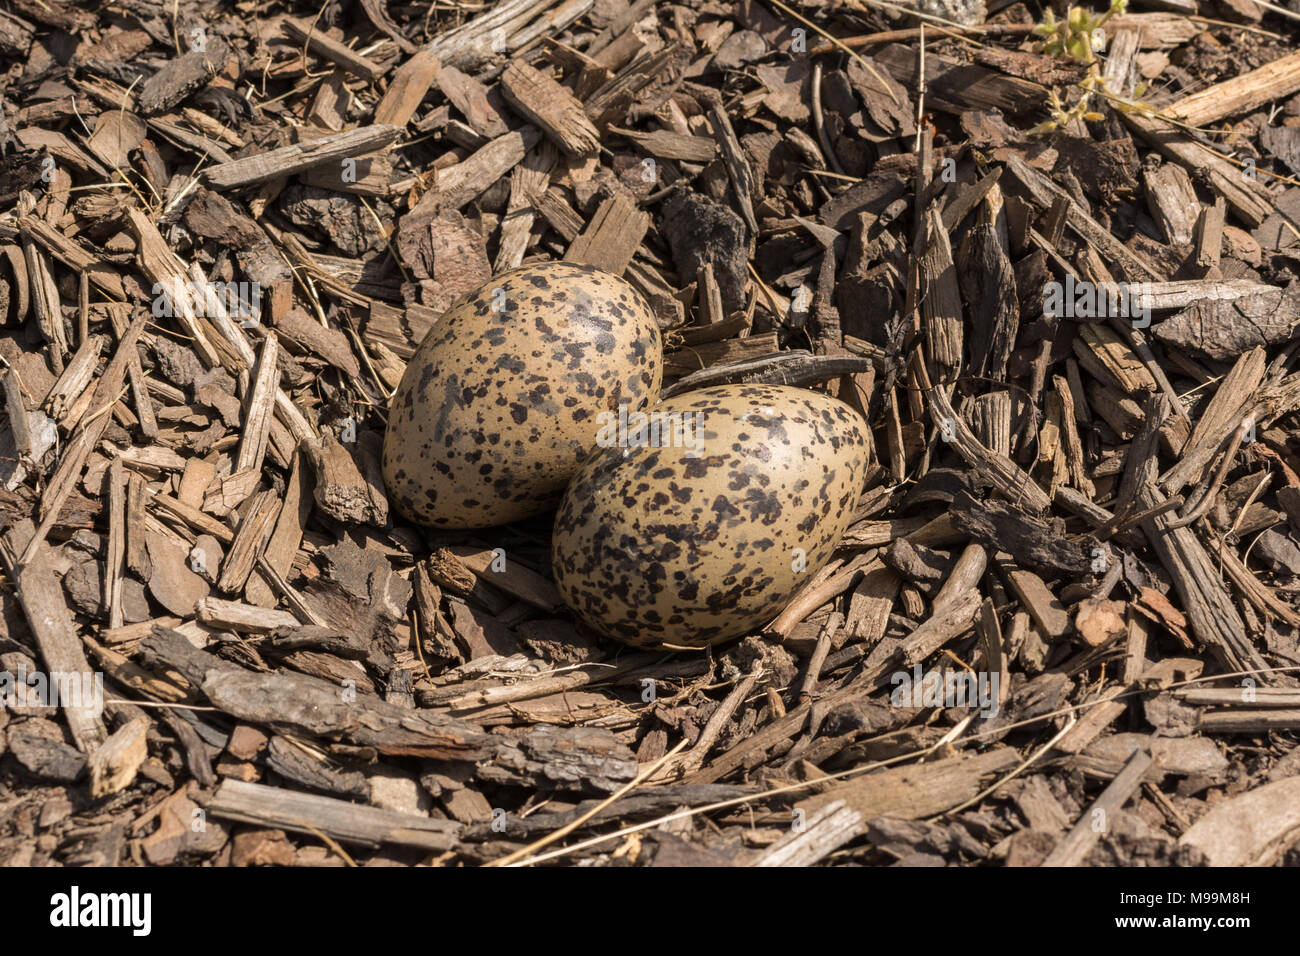 lapwing - vanellus vanellus - eggs in hollowed out nest in bark chippings in see images M99M8J and ET8K2M - Stock Image